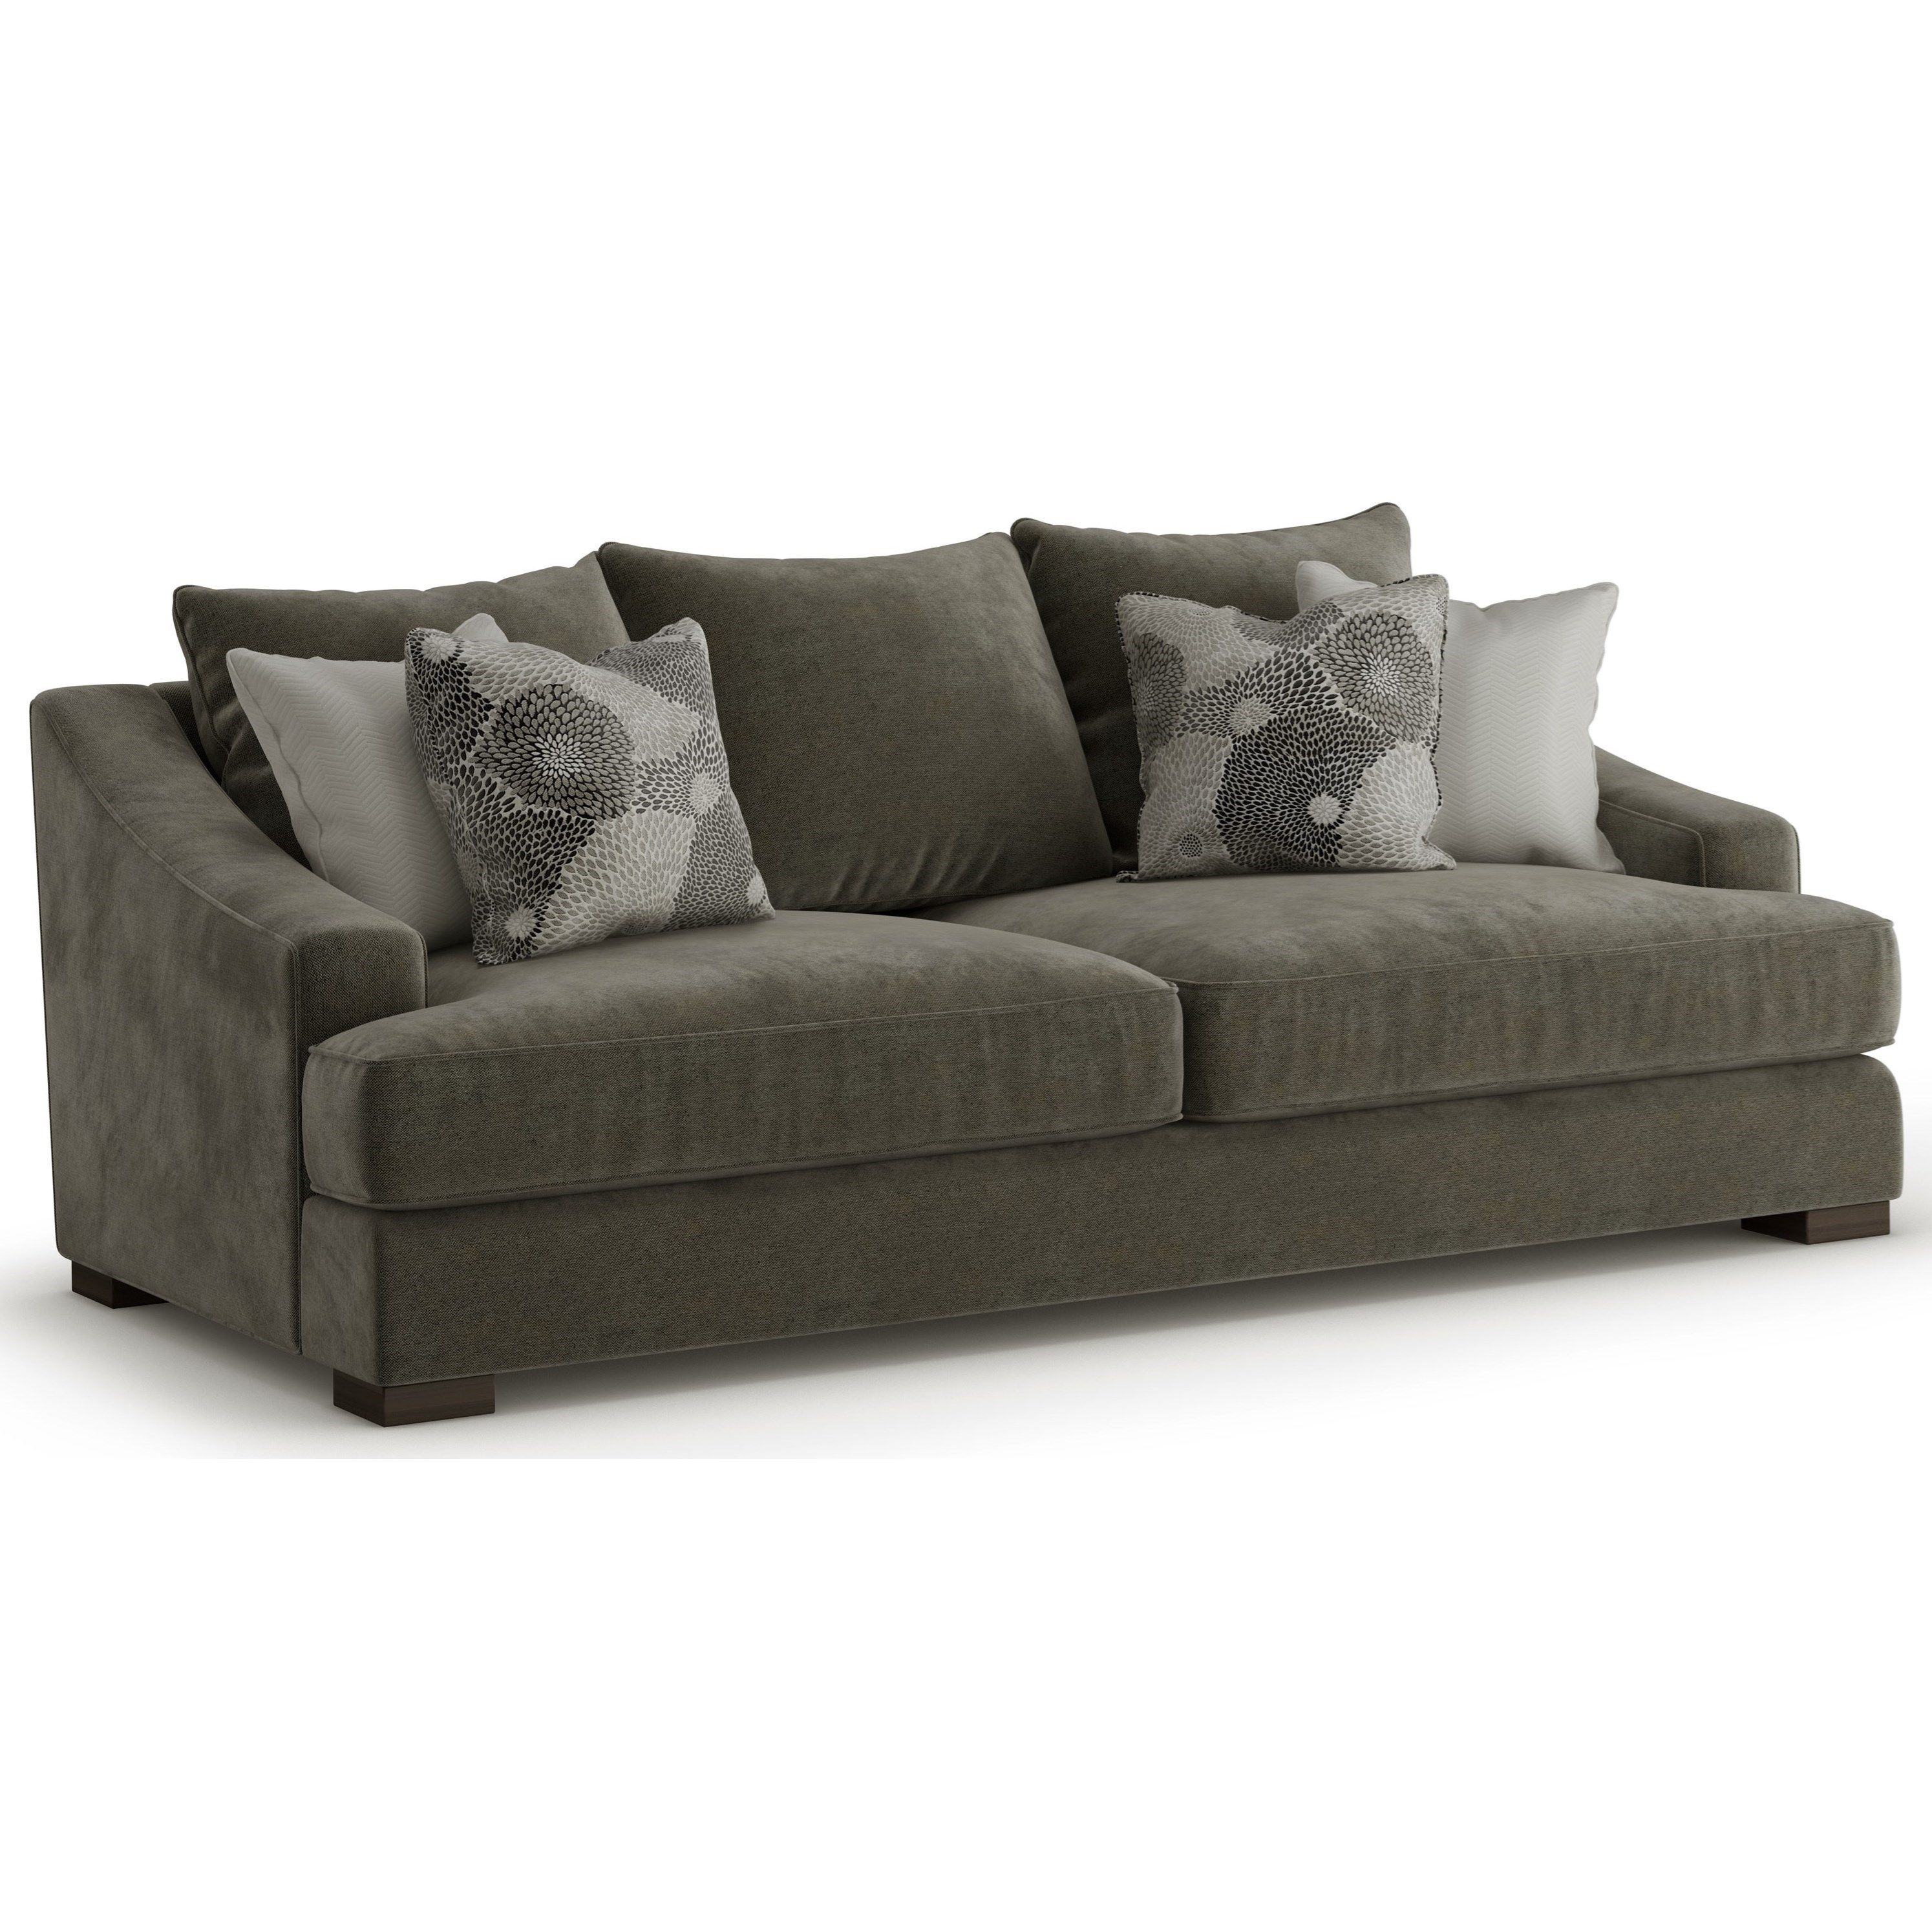 338 Sofa by Stanton at Rife's Home Furniture